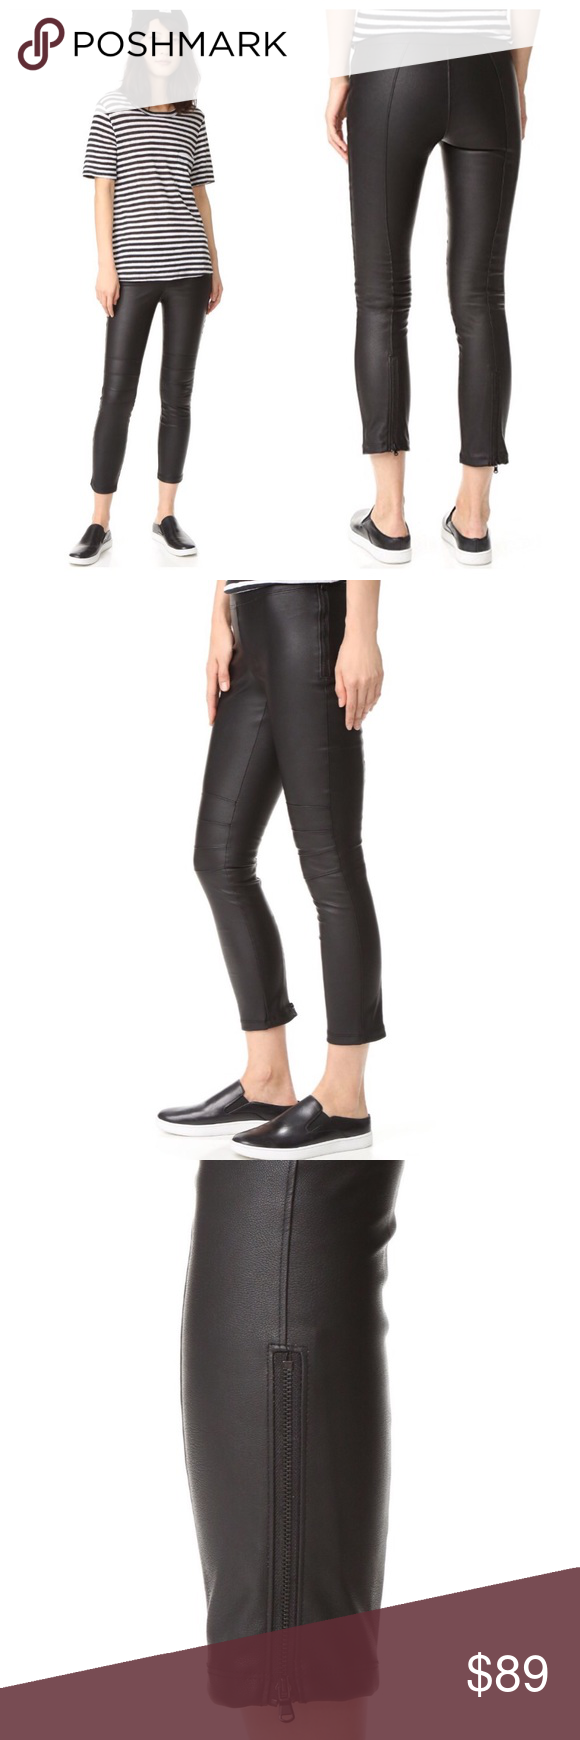 David Lerner Womens Moto Legging with Back Zip